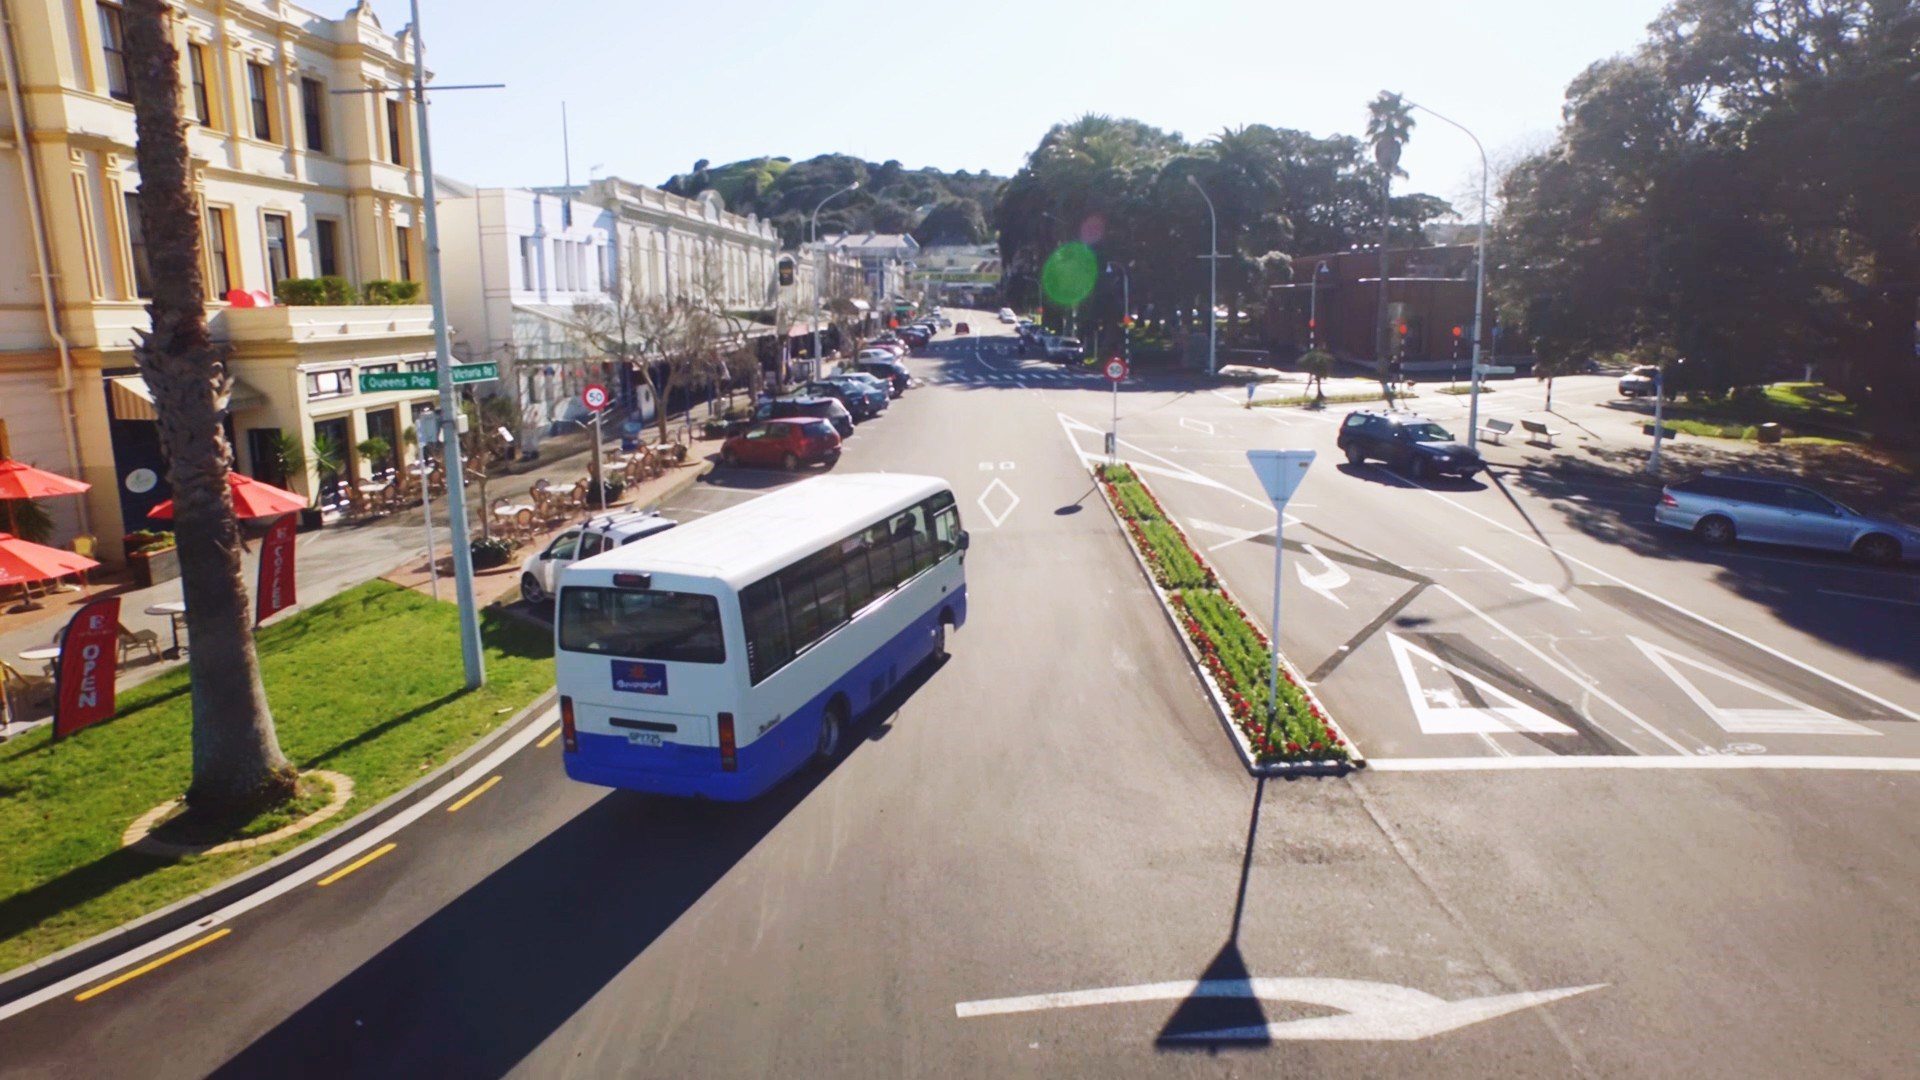 Devonport Hopon and Hopoff Bus Tour through the village